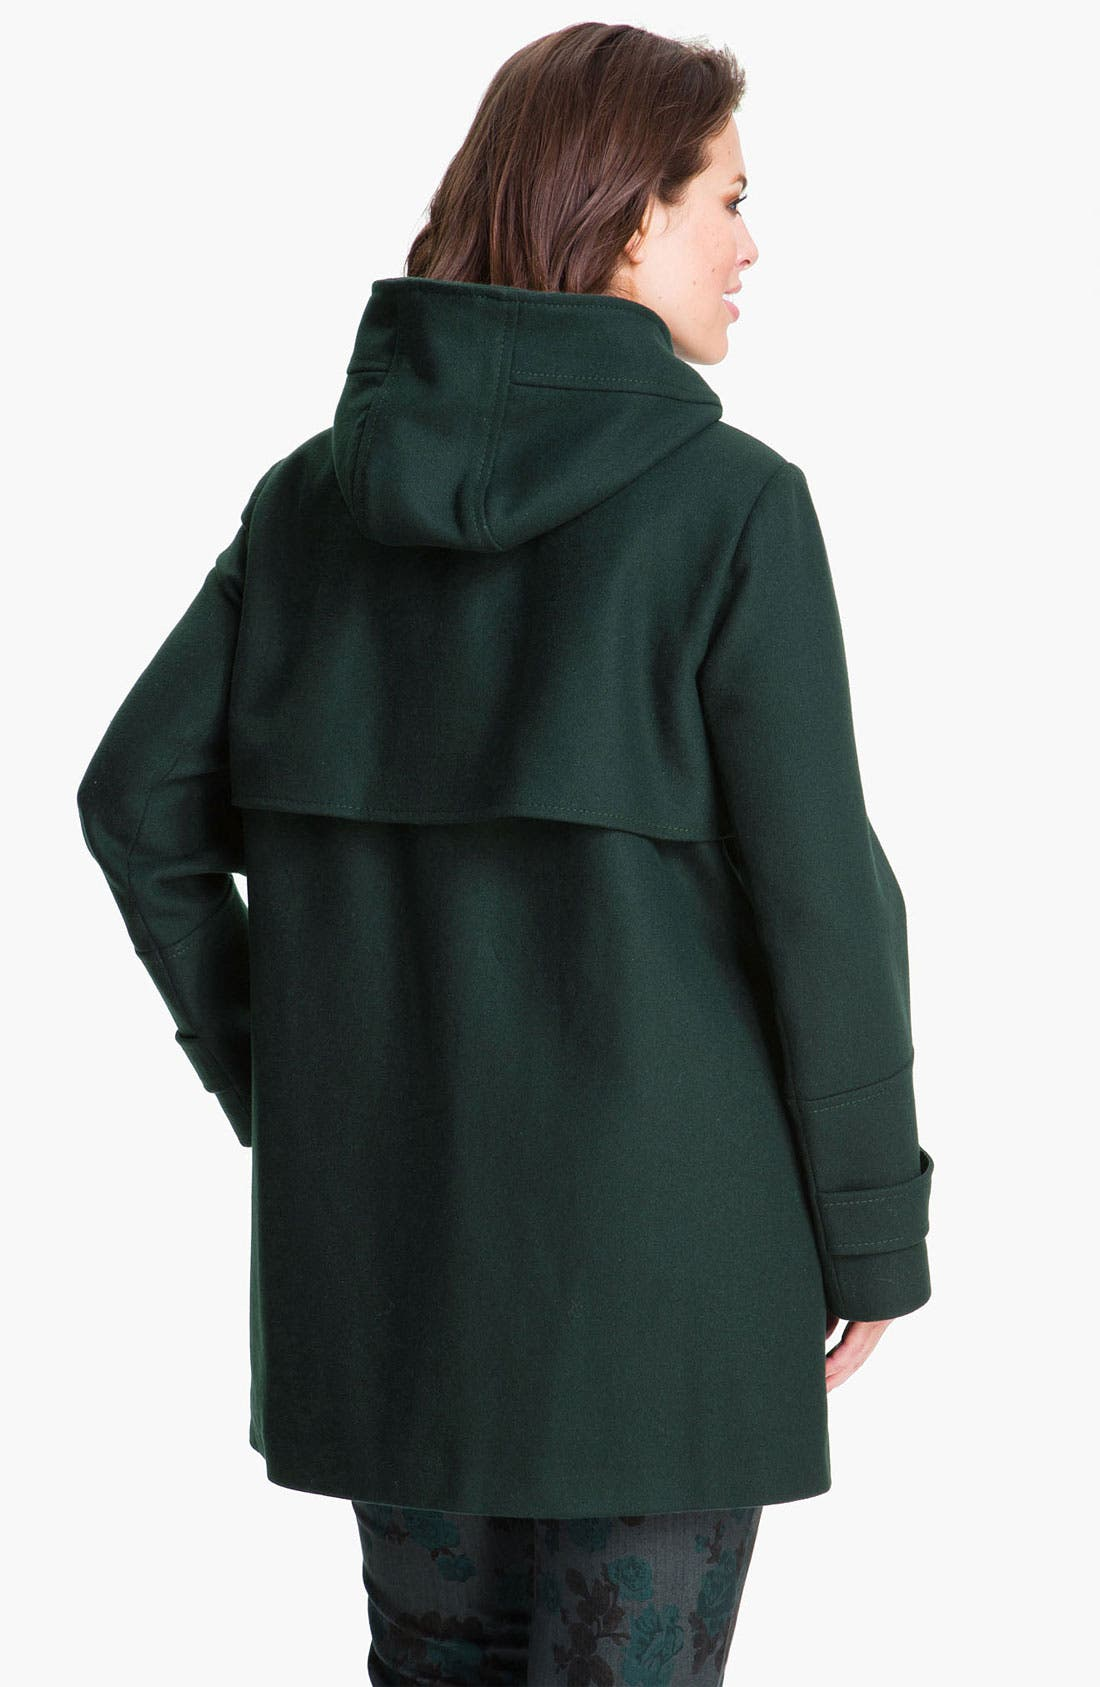 Alternate Image 2  - Vince Camuto Wool Blend Jacket with Detachable Hood (Plus)